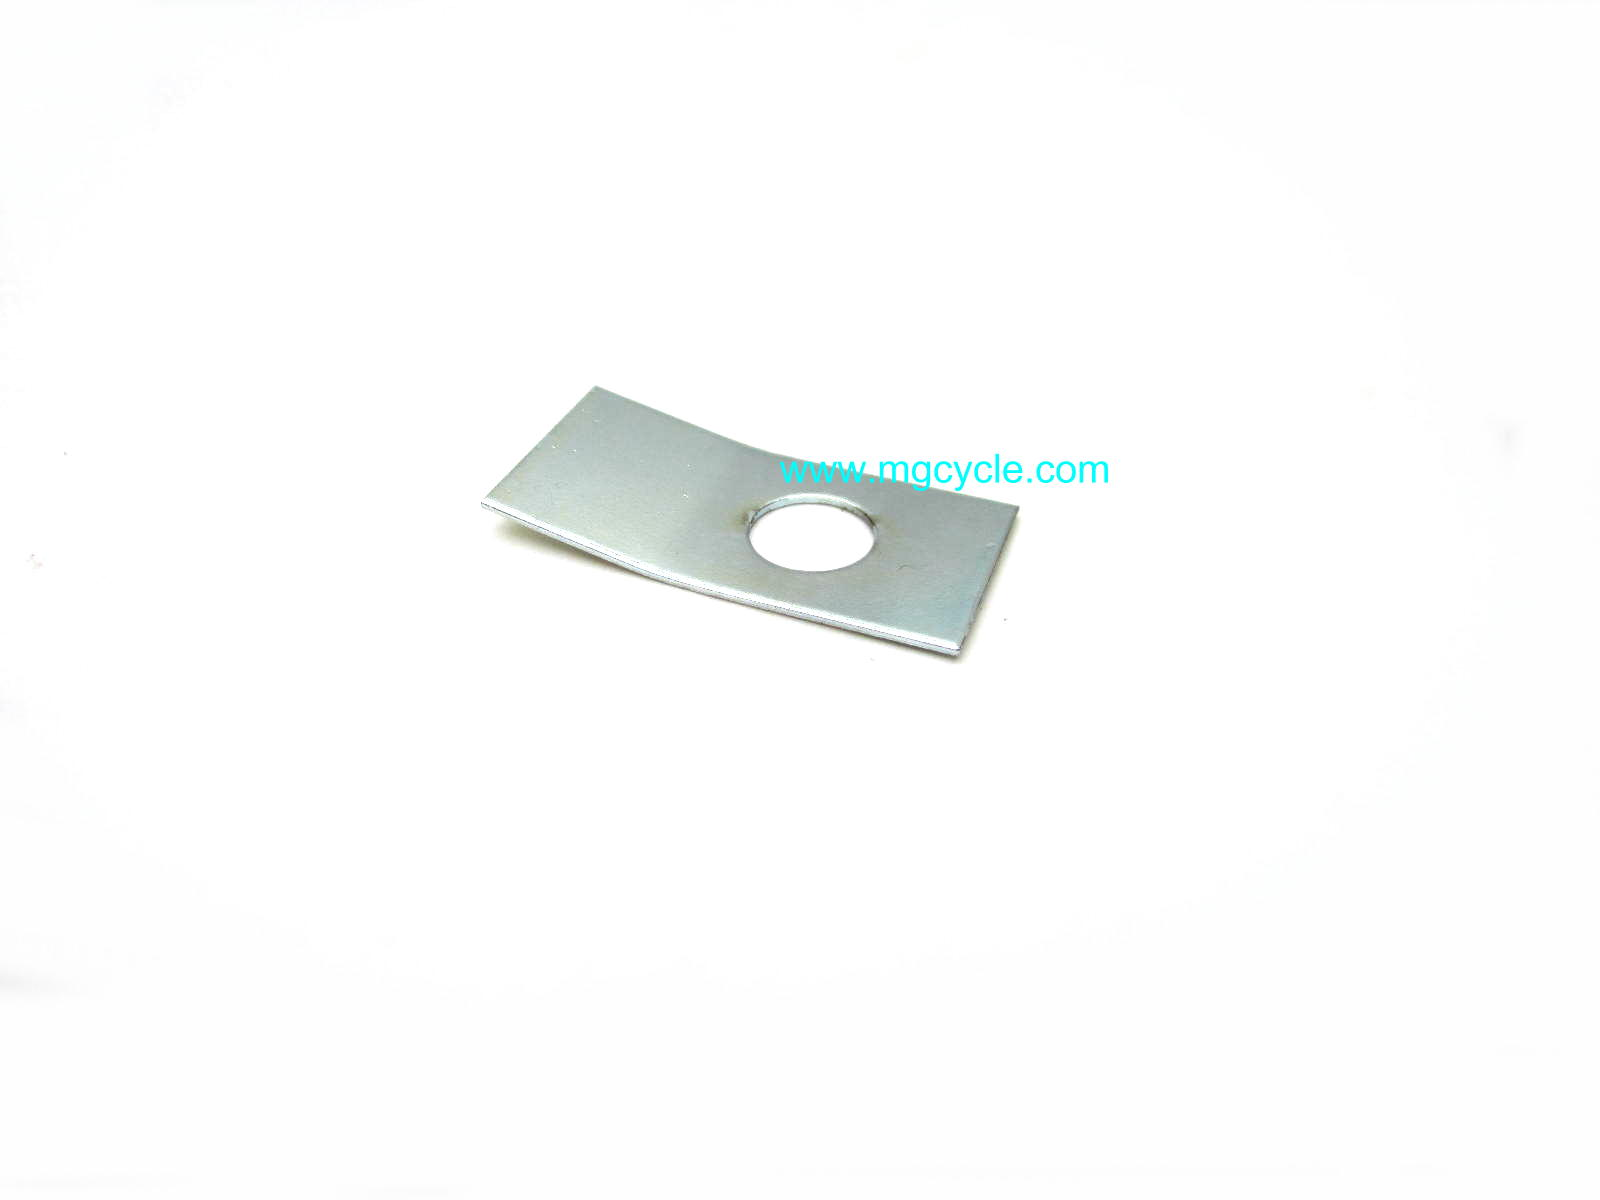 Rear drive flange locking plate, fold over lock plate